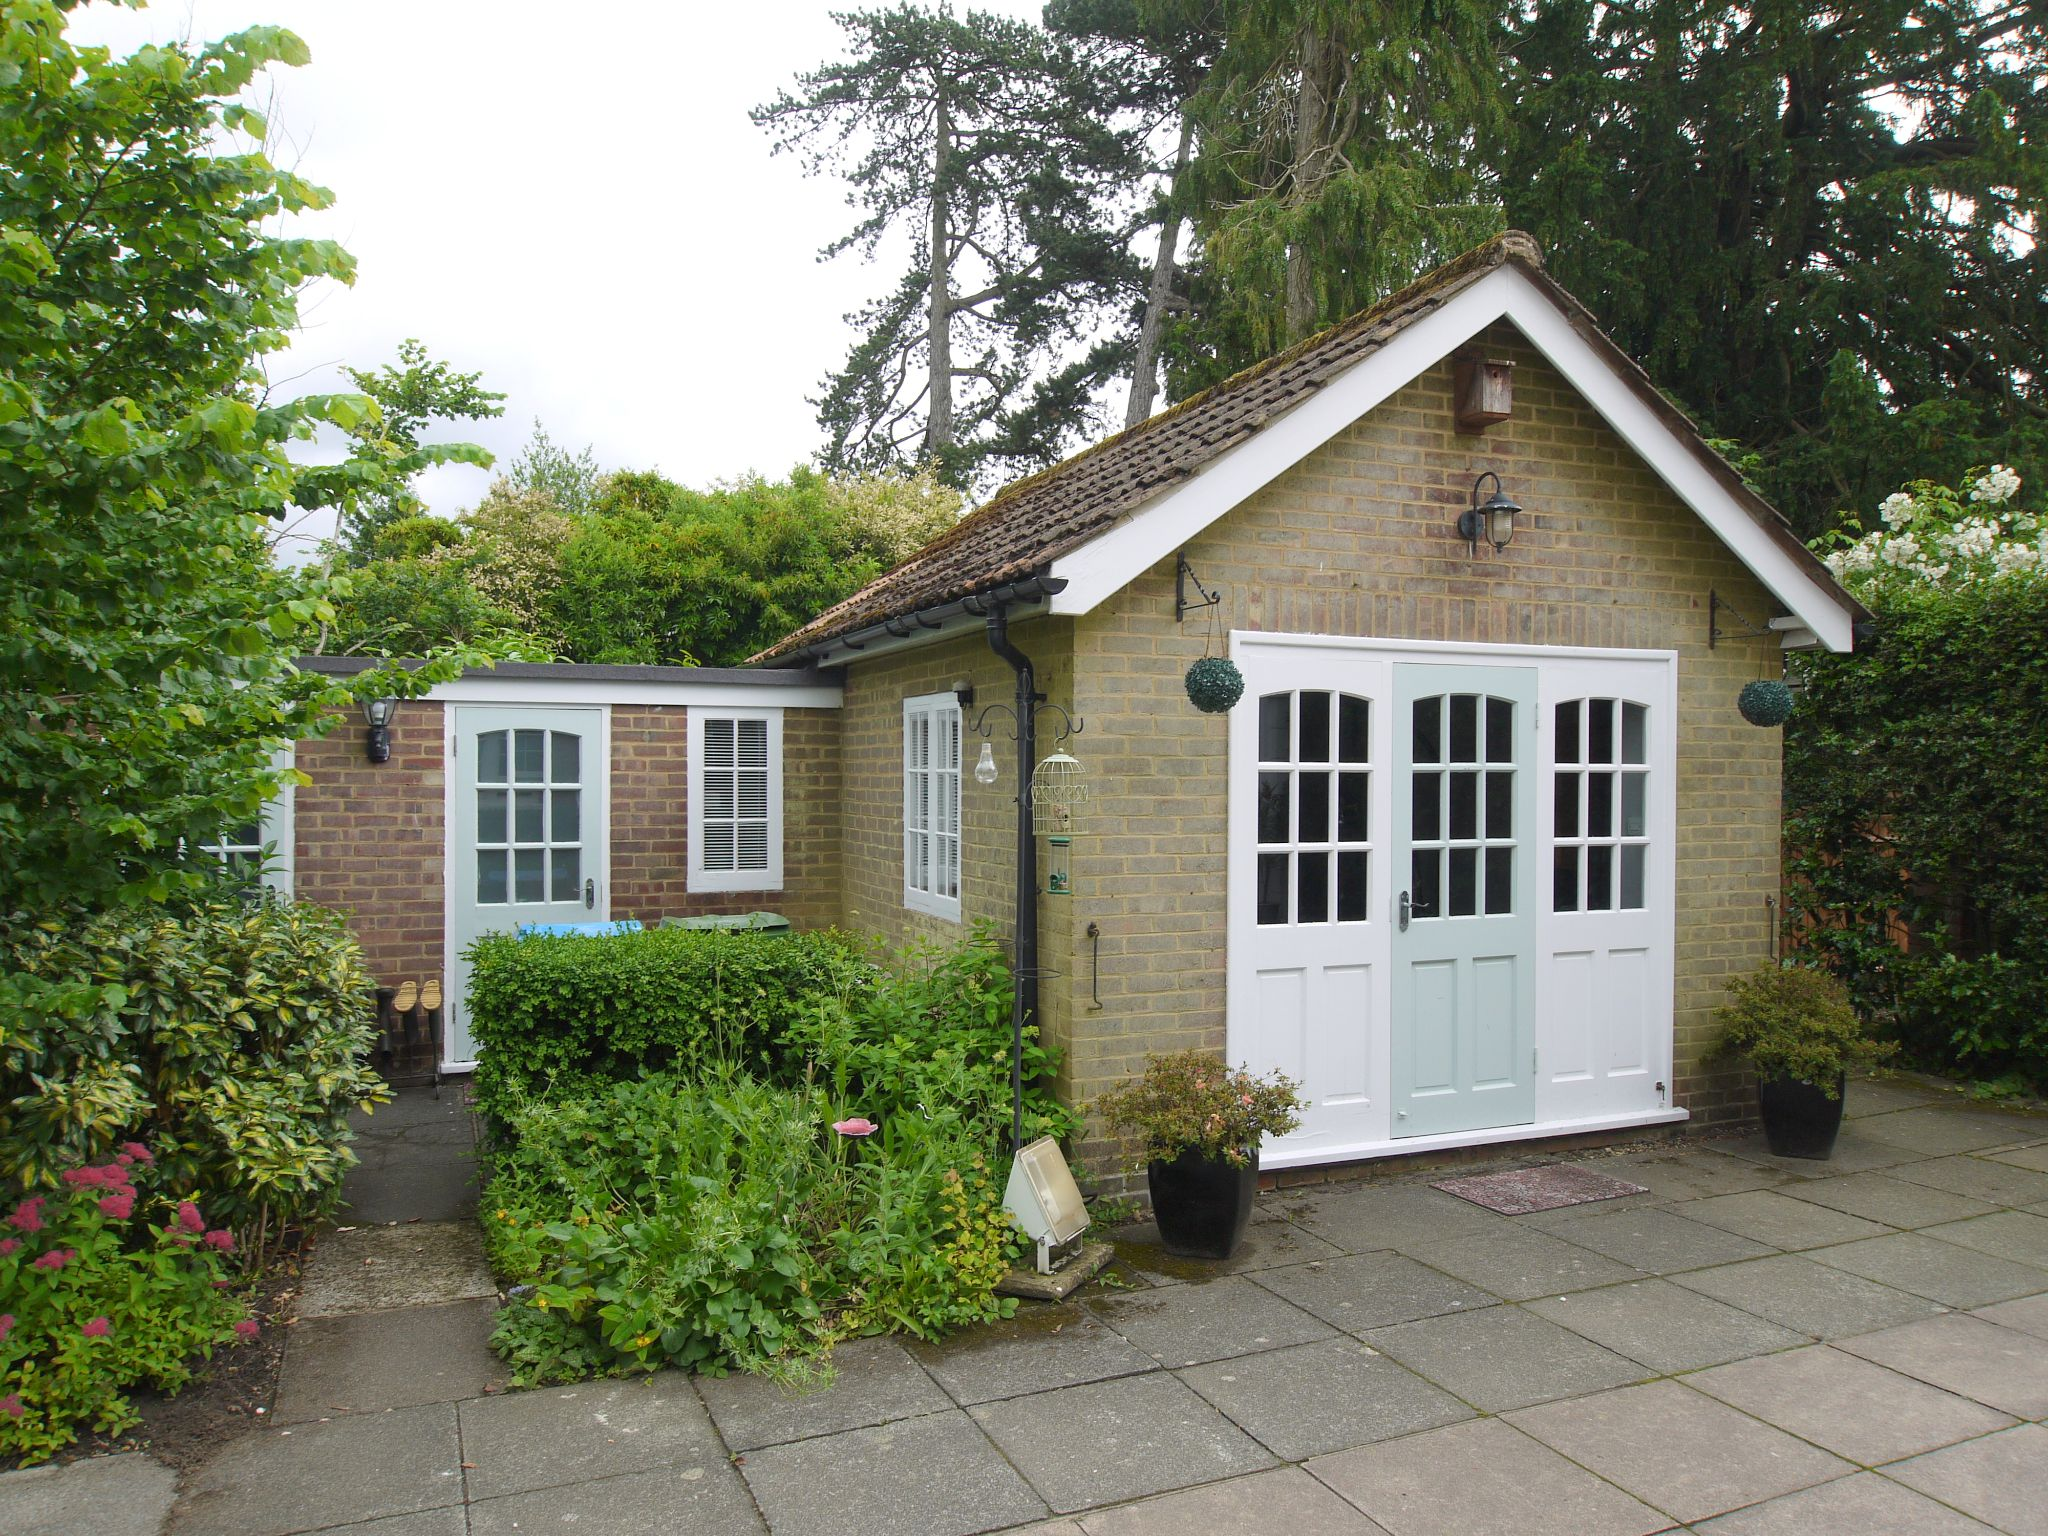 4 bedroom detached house For Sale in Sevenoaks - Photograph 18